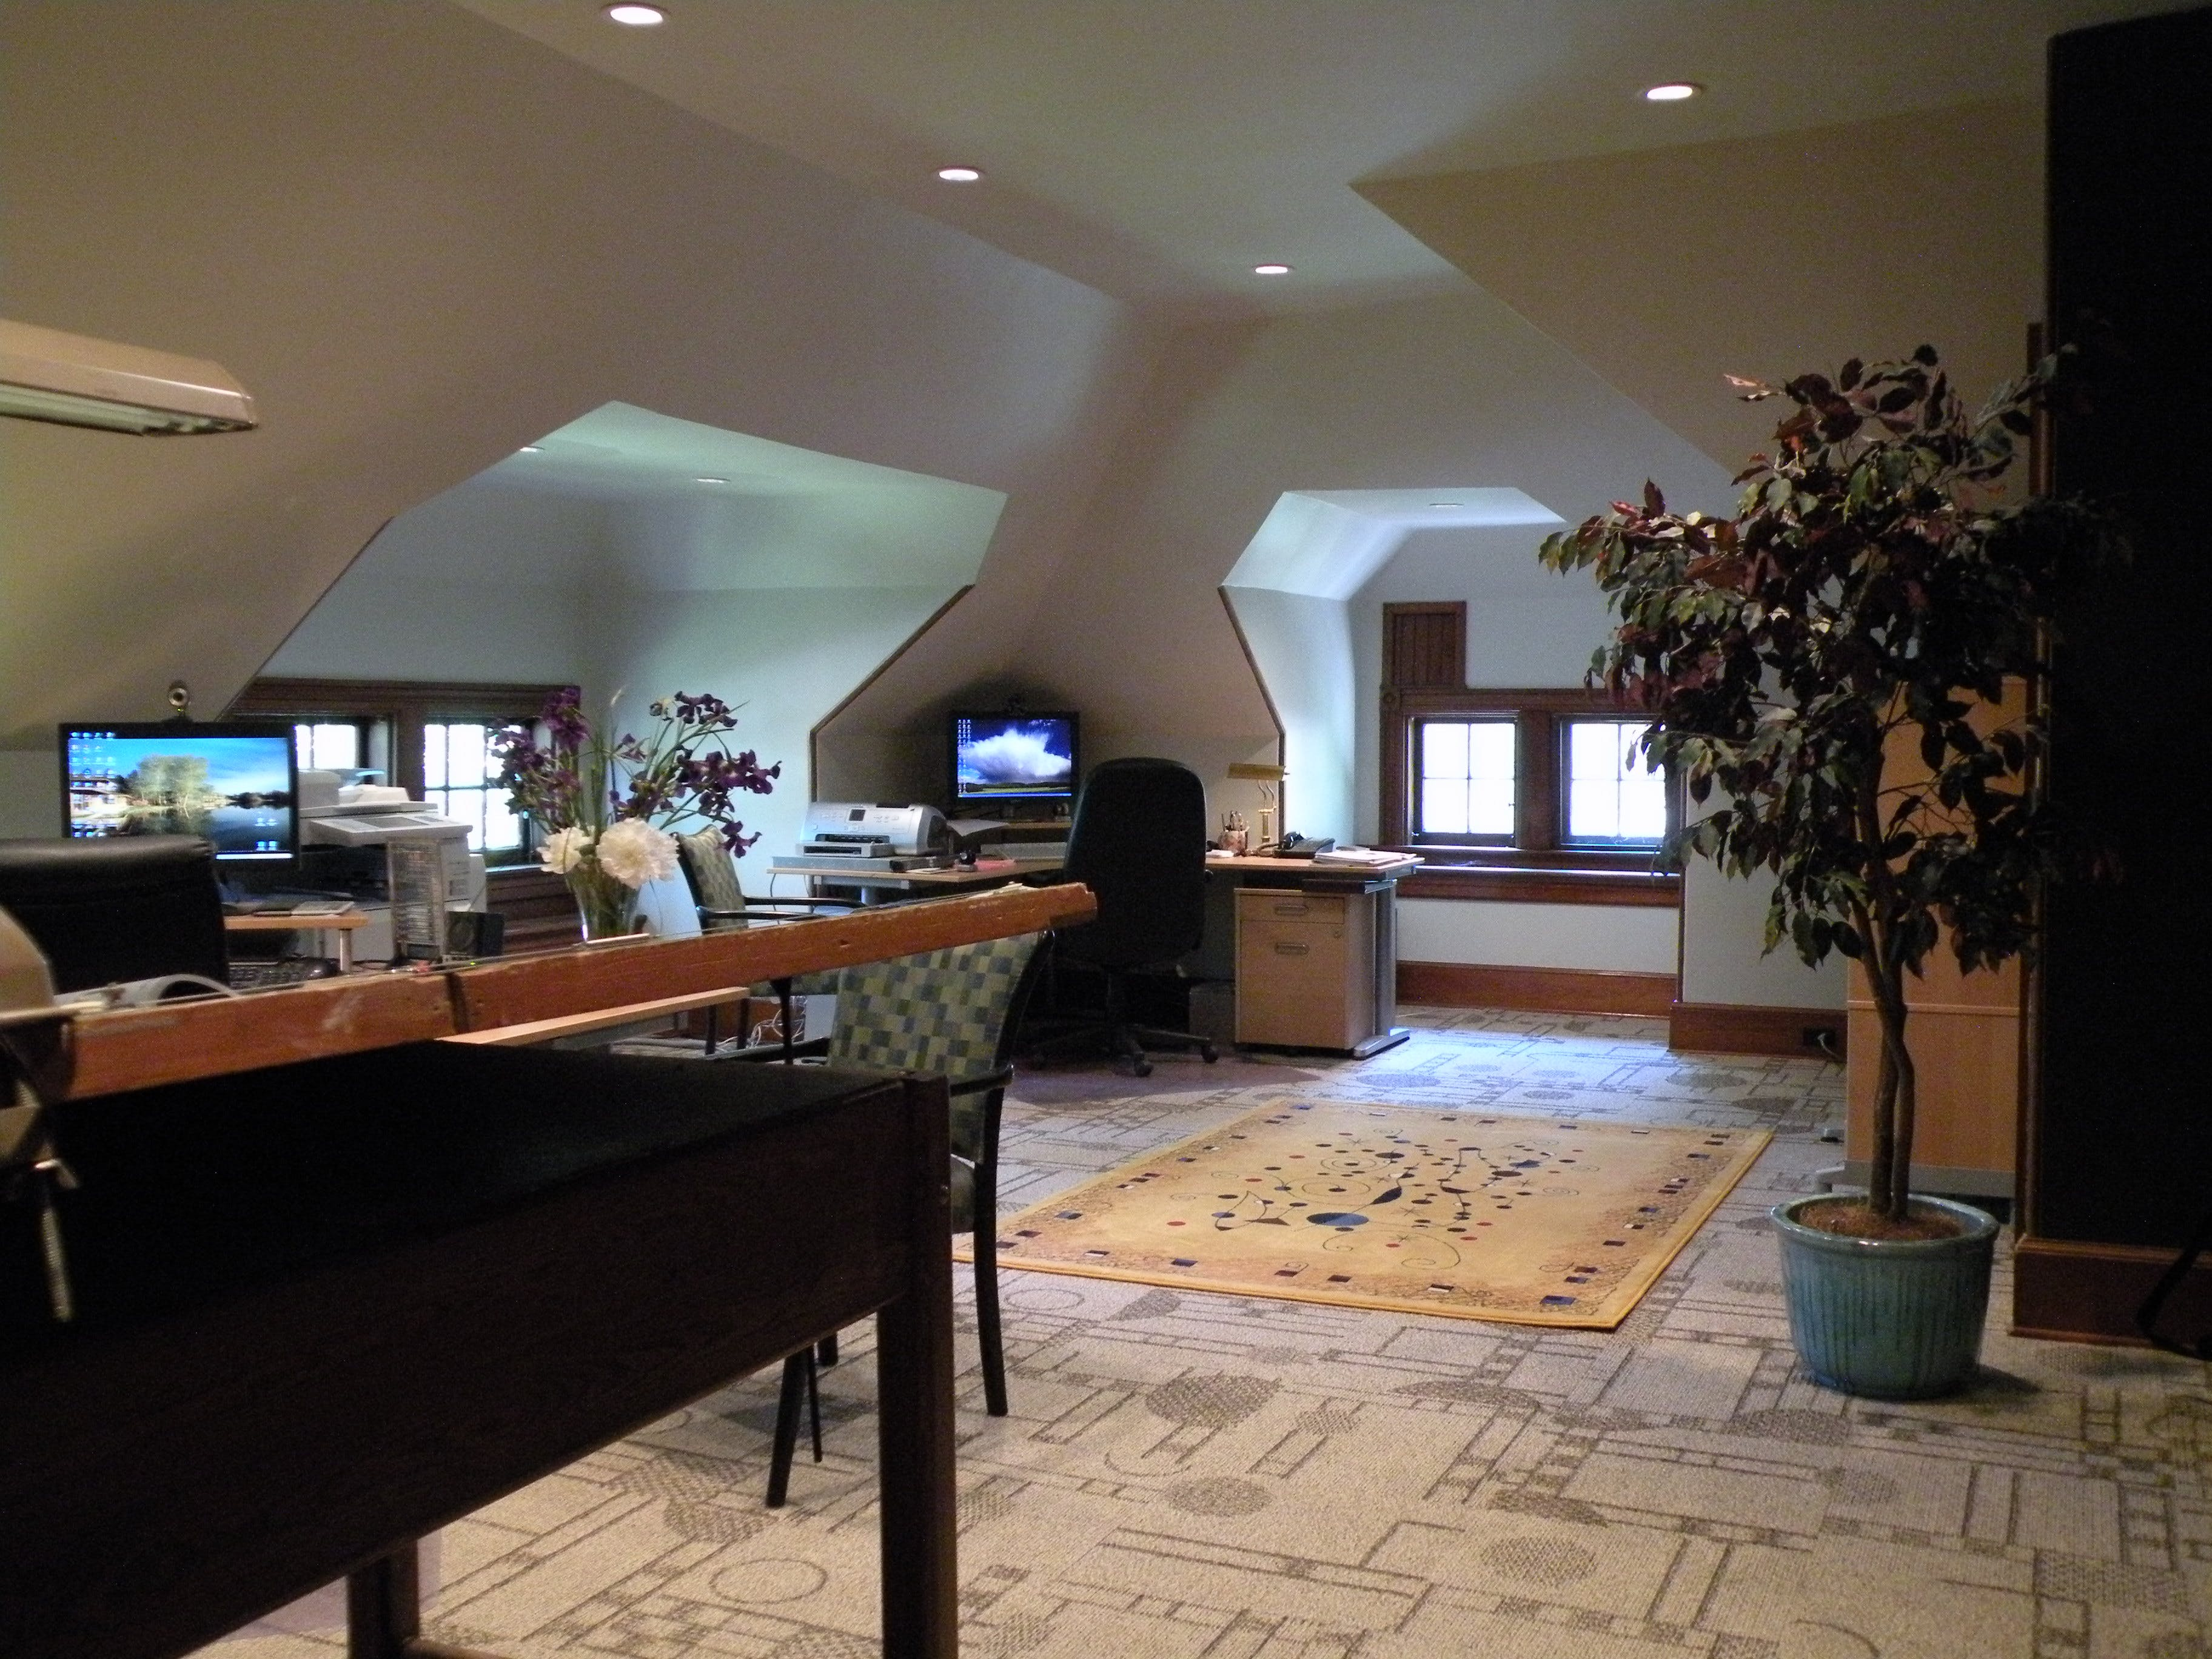 Home Office Renovation Project | Scott Lutheran | Archinect